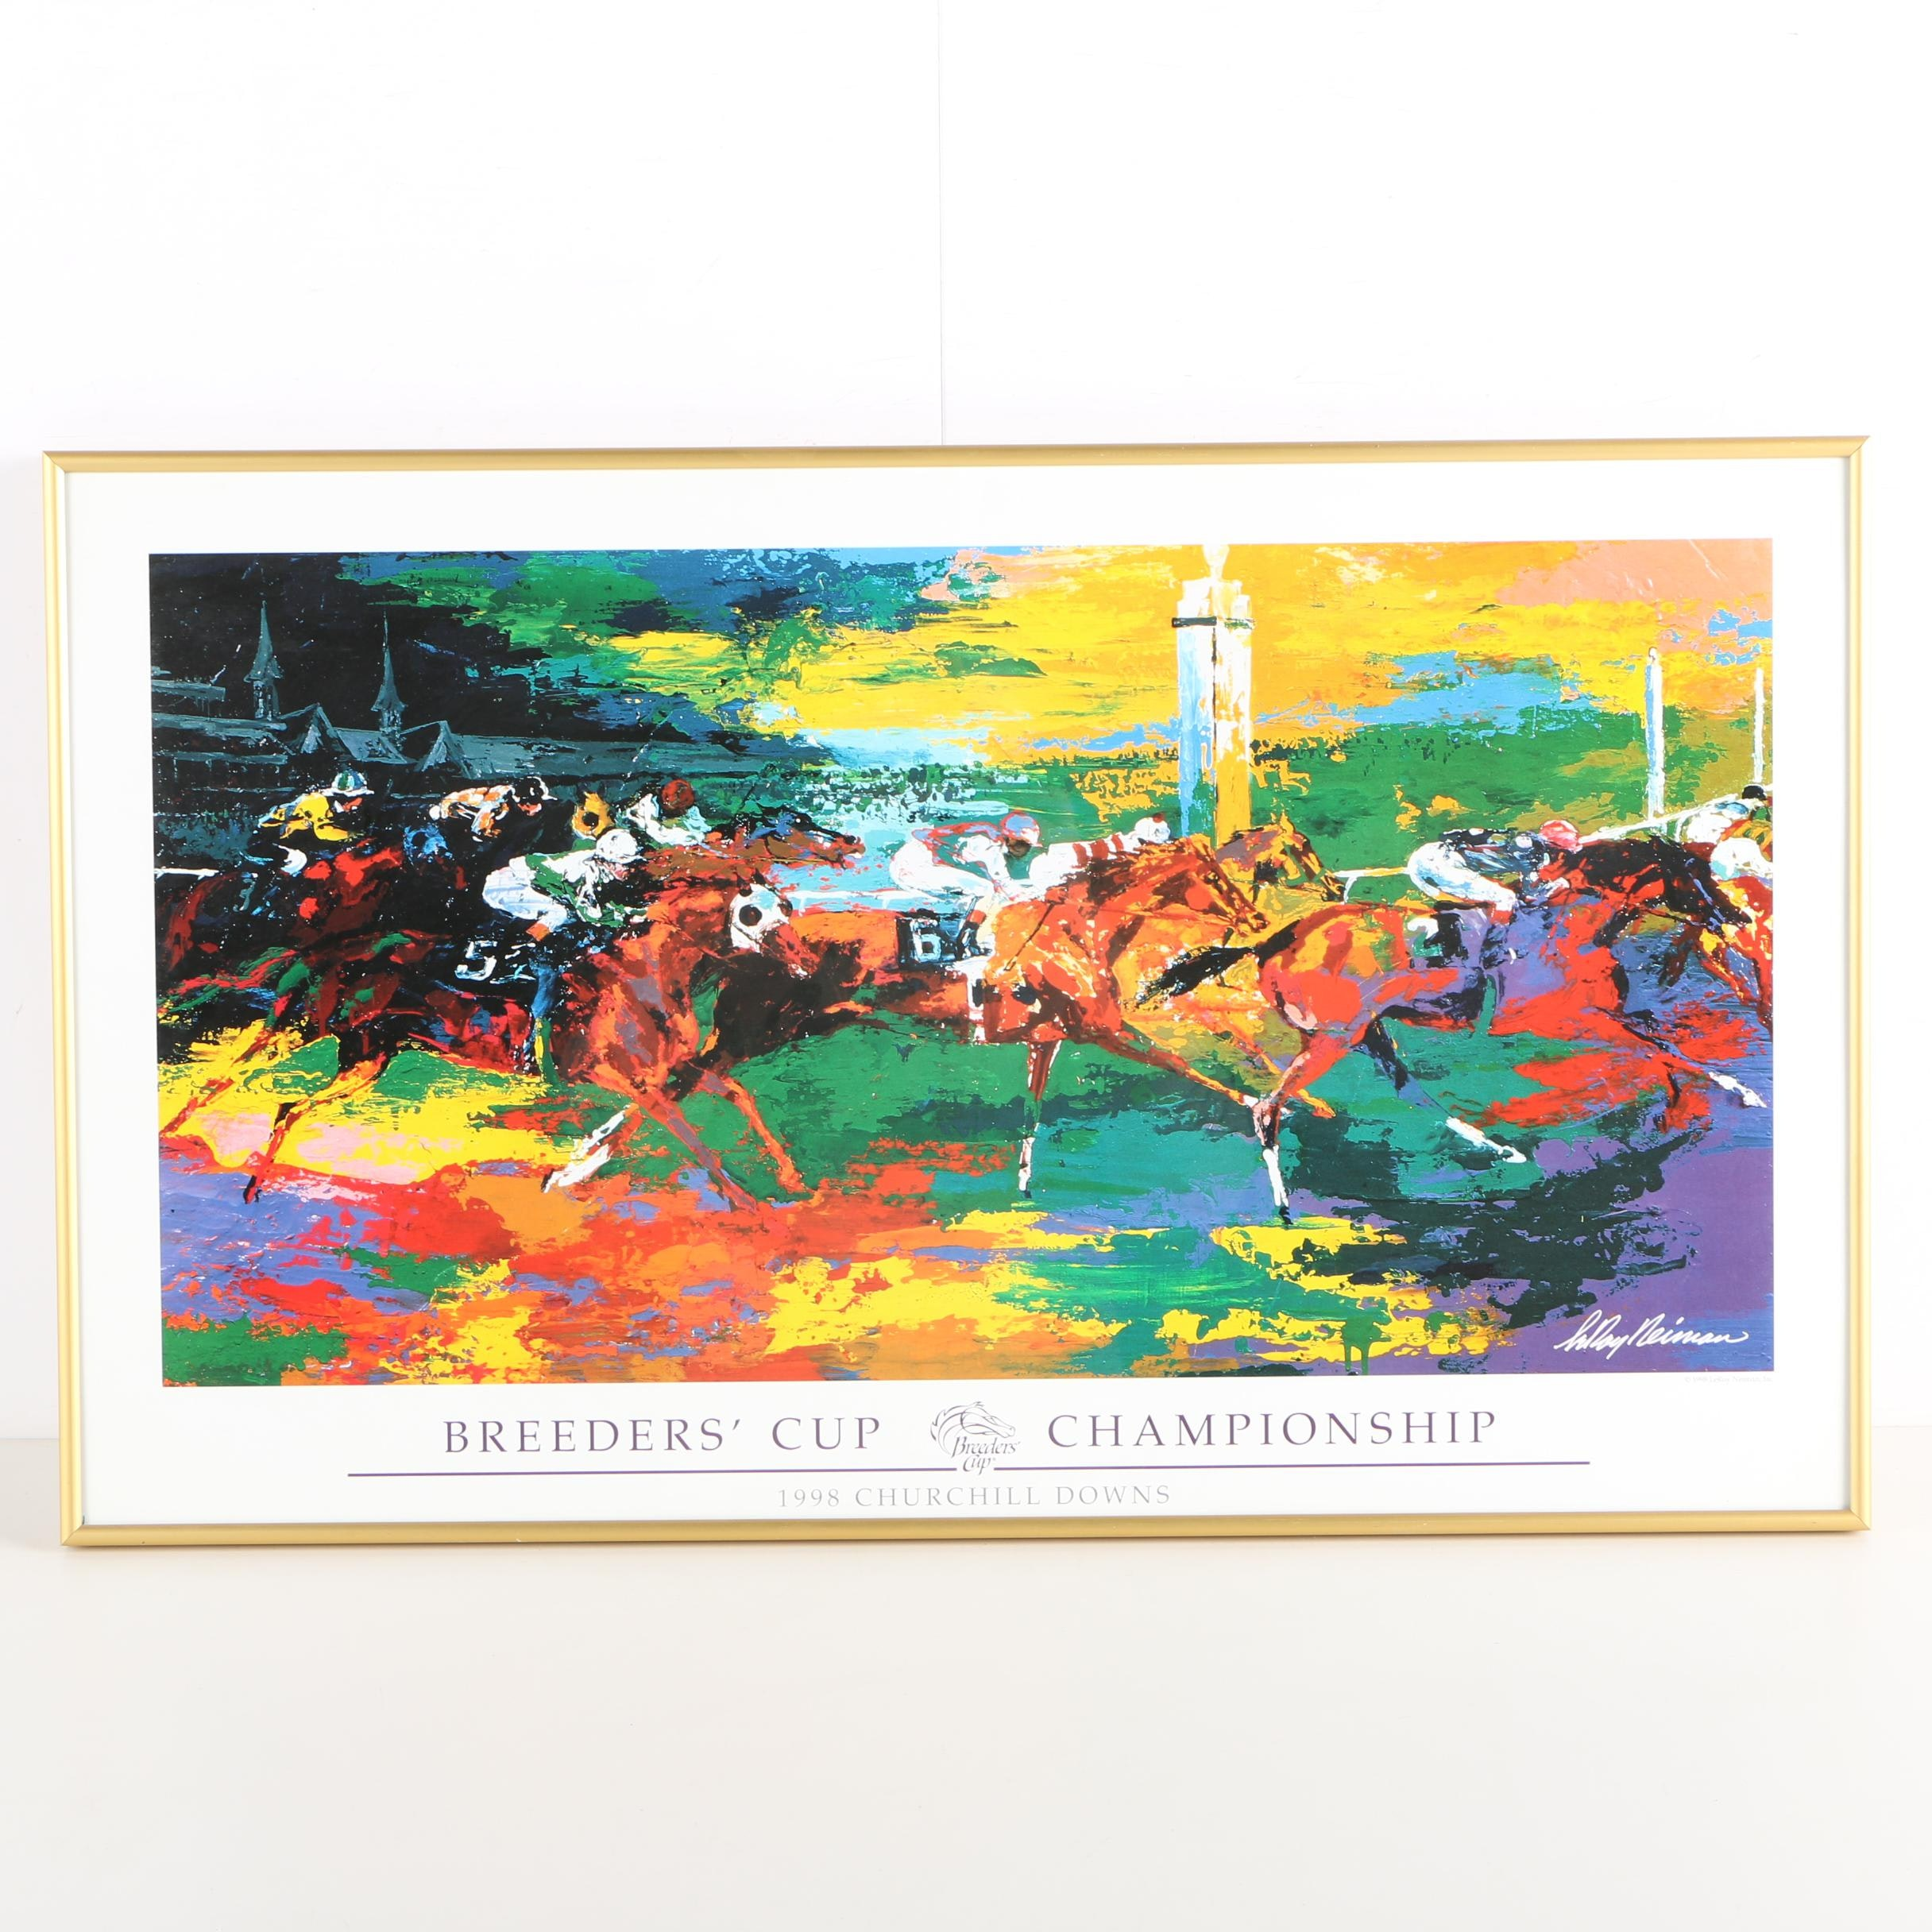 Giclee After LeRoy Neiman Breeder's Cup Championship Poster